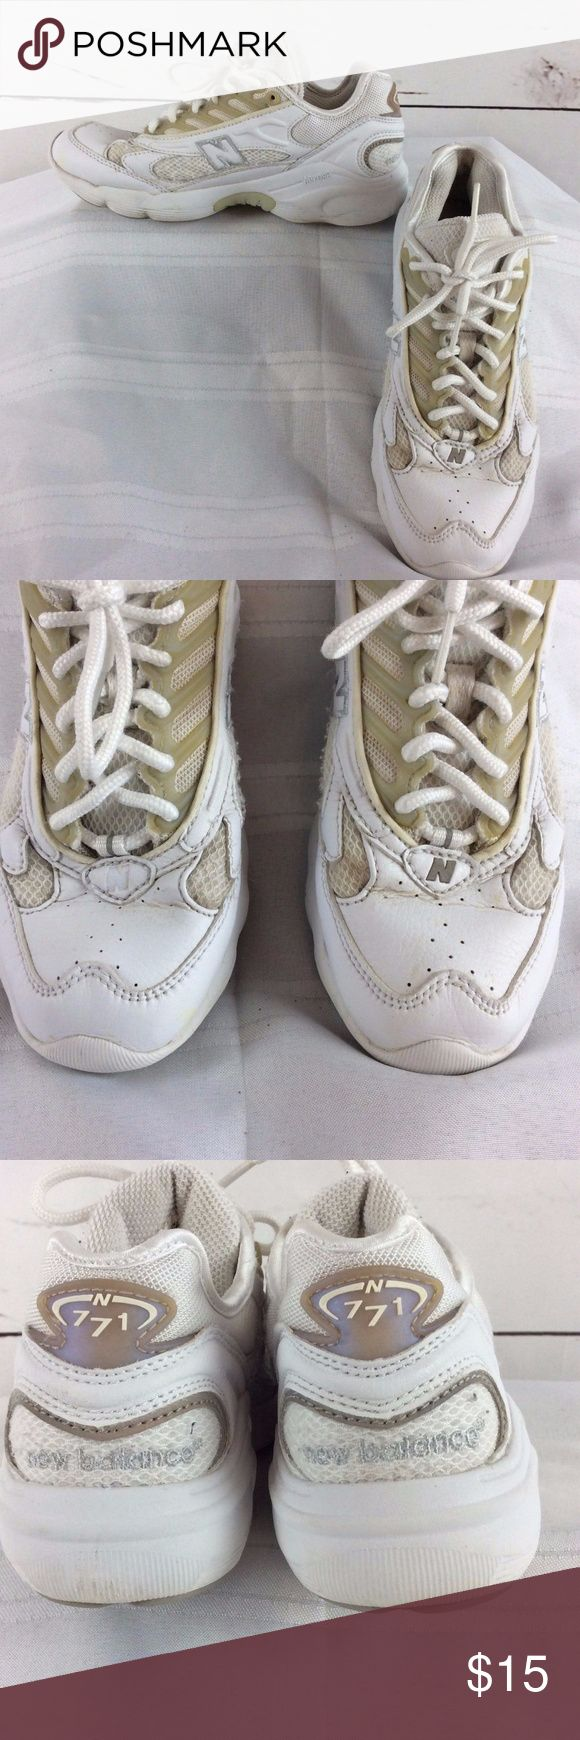 New Balance Women Walking Shoes White Leather Mesh 100% money back guarantee, free returns and excellent customer service.  Your item will ship within 24 hours after payment is received (excluding weekends and Holidays)  Please let us know if you have any questions.   New Balance Womens Walking Shoes 771 White Leather Mesh Size 6 B Sneakers Abzorb  Location: JL68  Our items are all from a pet free, smoke free home.  Items are purchased locally or donated so we are not aware if they have…